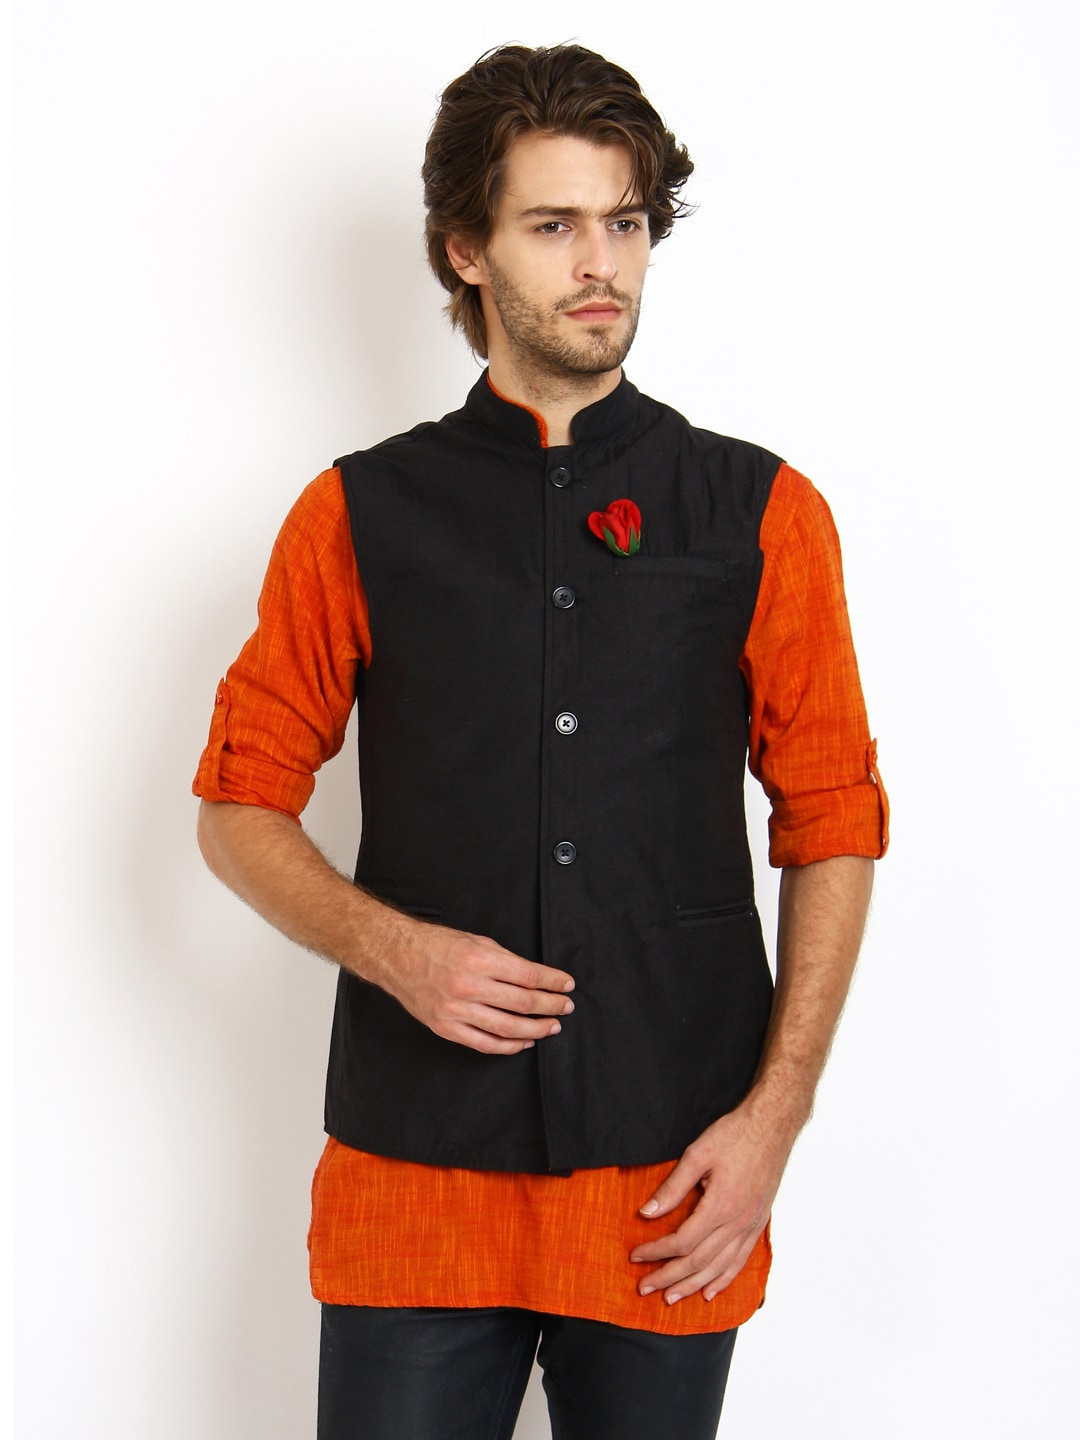 online shopping at myntra